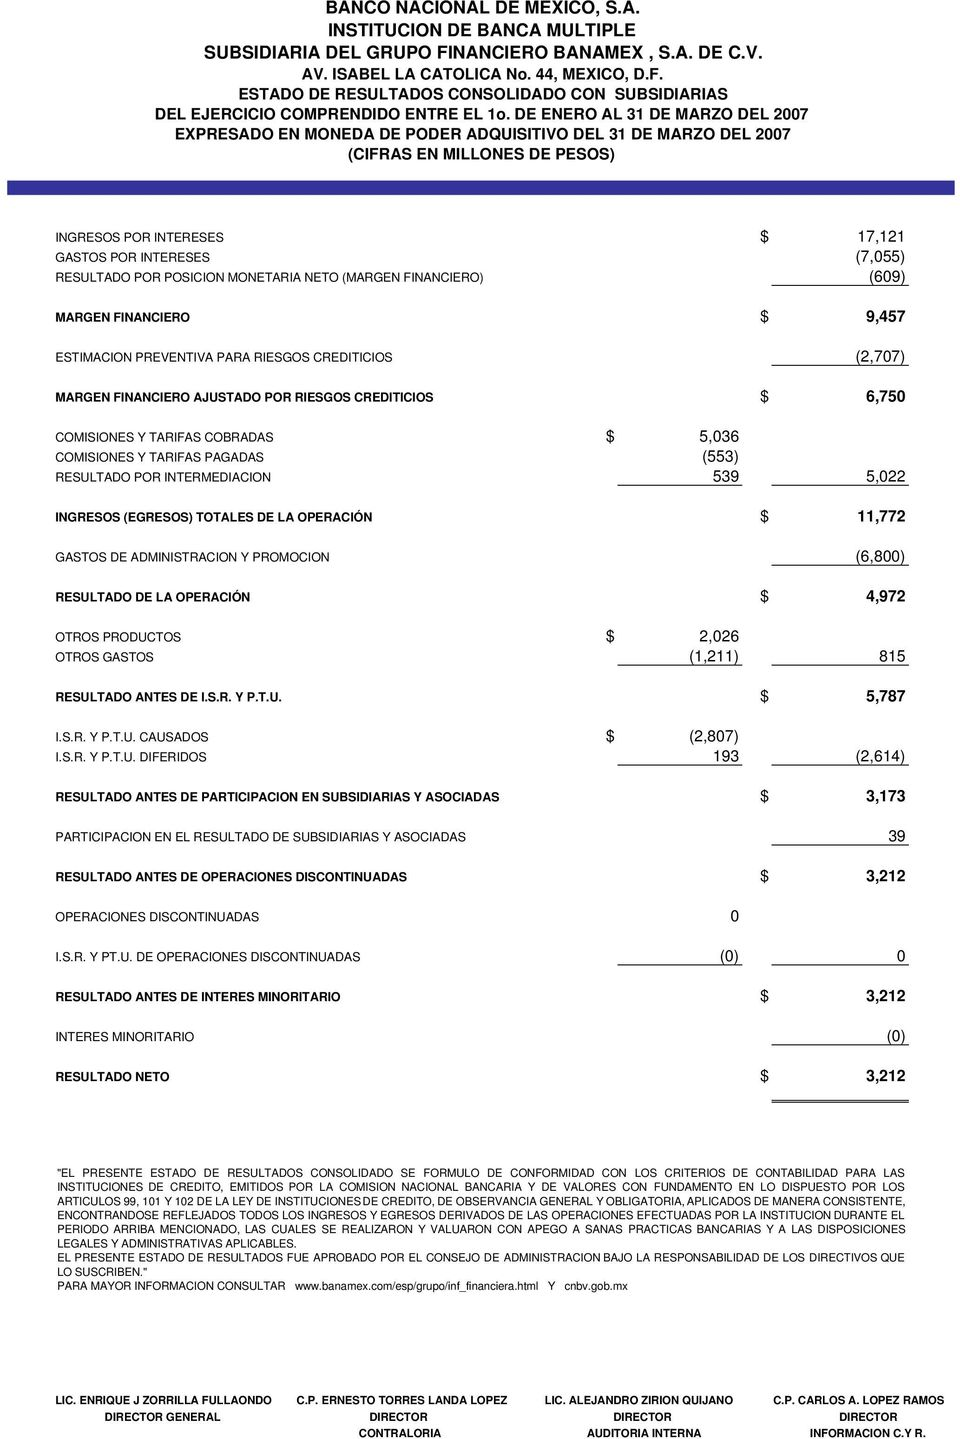 POR POSICION MONETARIA NETO (MARGEN FINANCIERO) (609) MARGEN FINANCIERO $ 9,457 ESTIMACION PREVENTIVA PARA RIESGOS CREDITICIOS (2,707) MARGEN FINANCIERO AJUSTADO POR RIESGOS CREDITICIOS $ 6,750